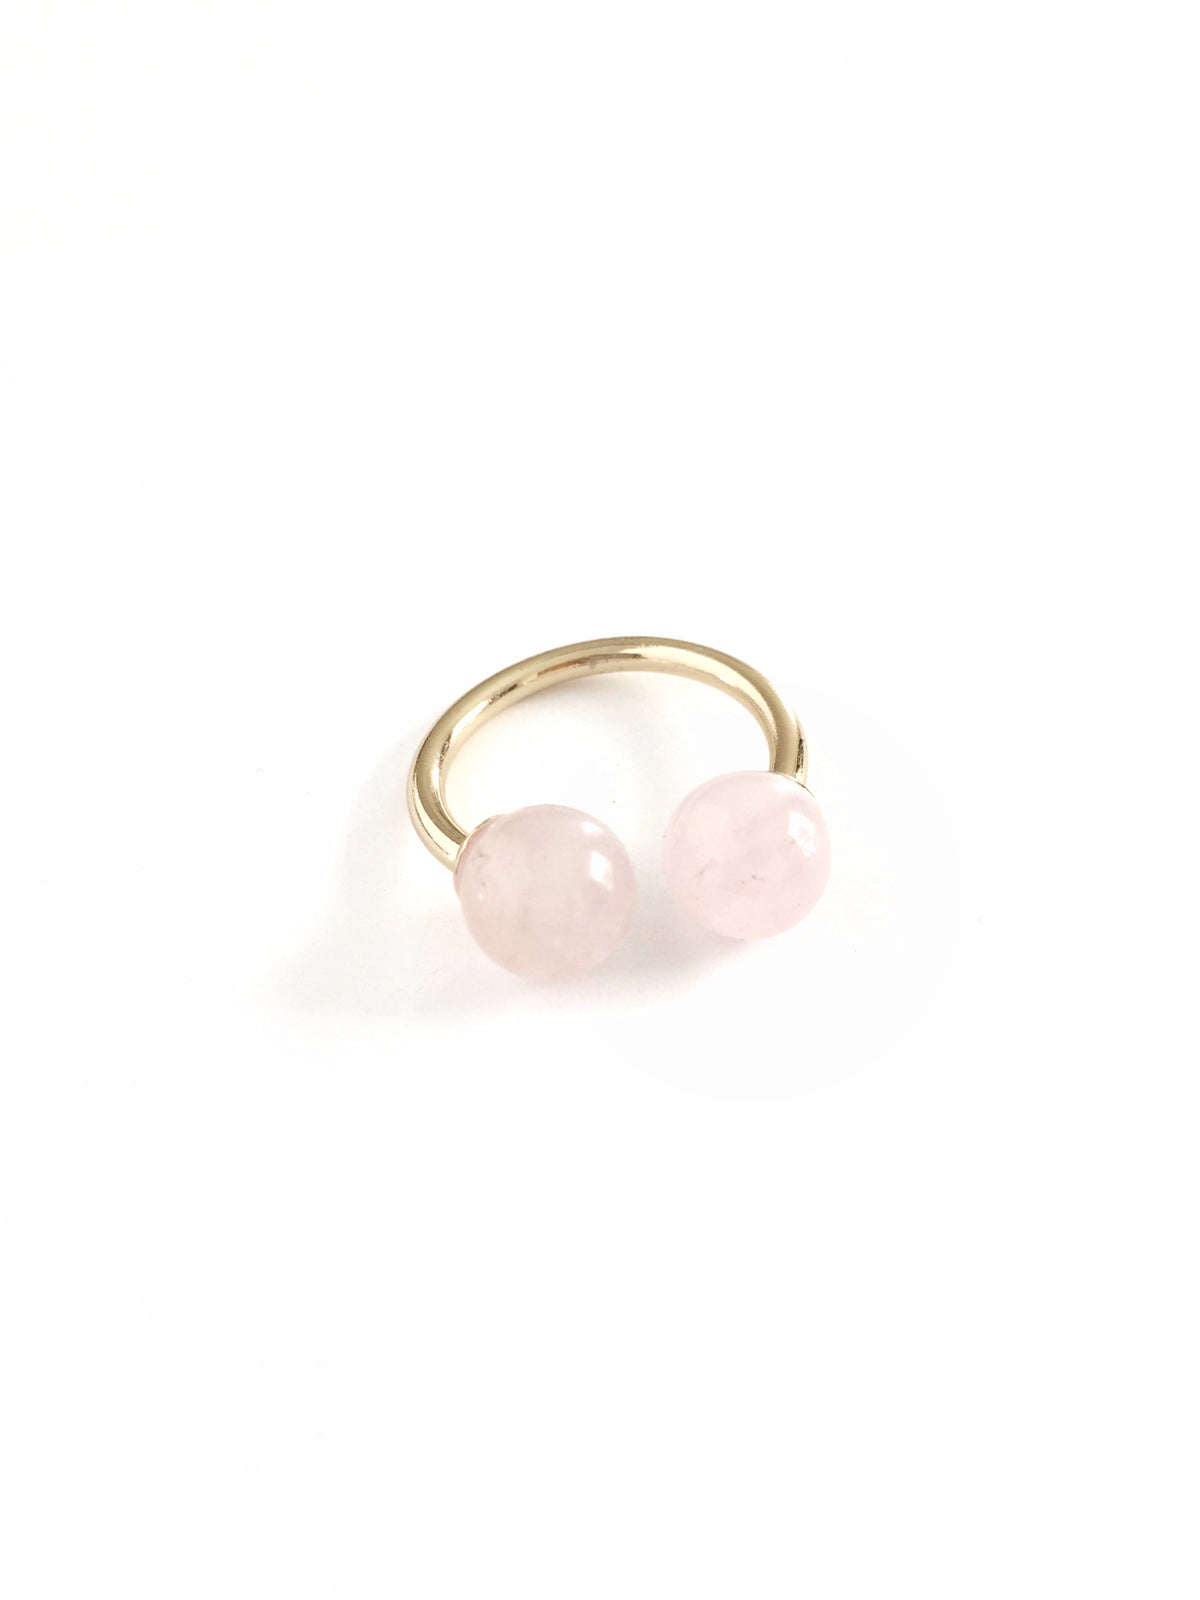 rose quartz thibaut ring by janna conner